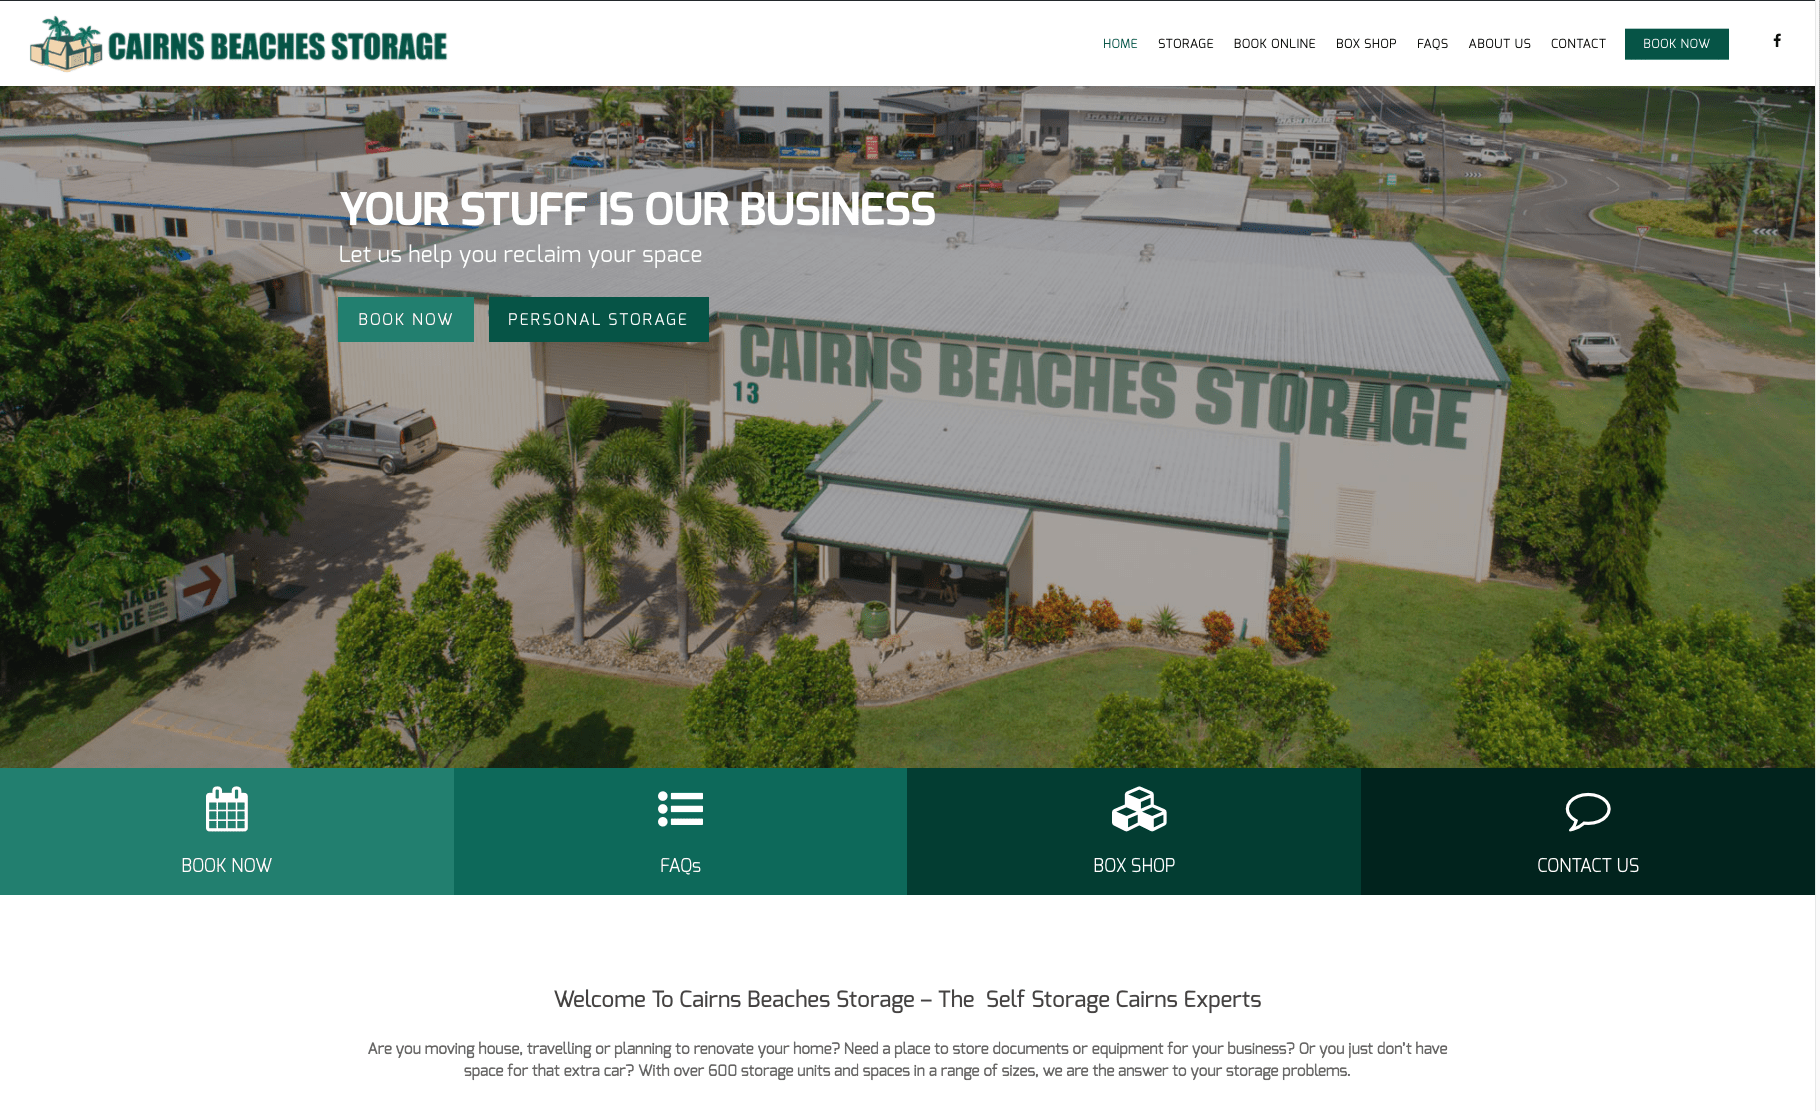 We've launched a new website